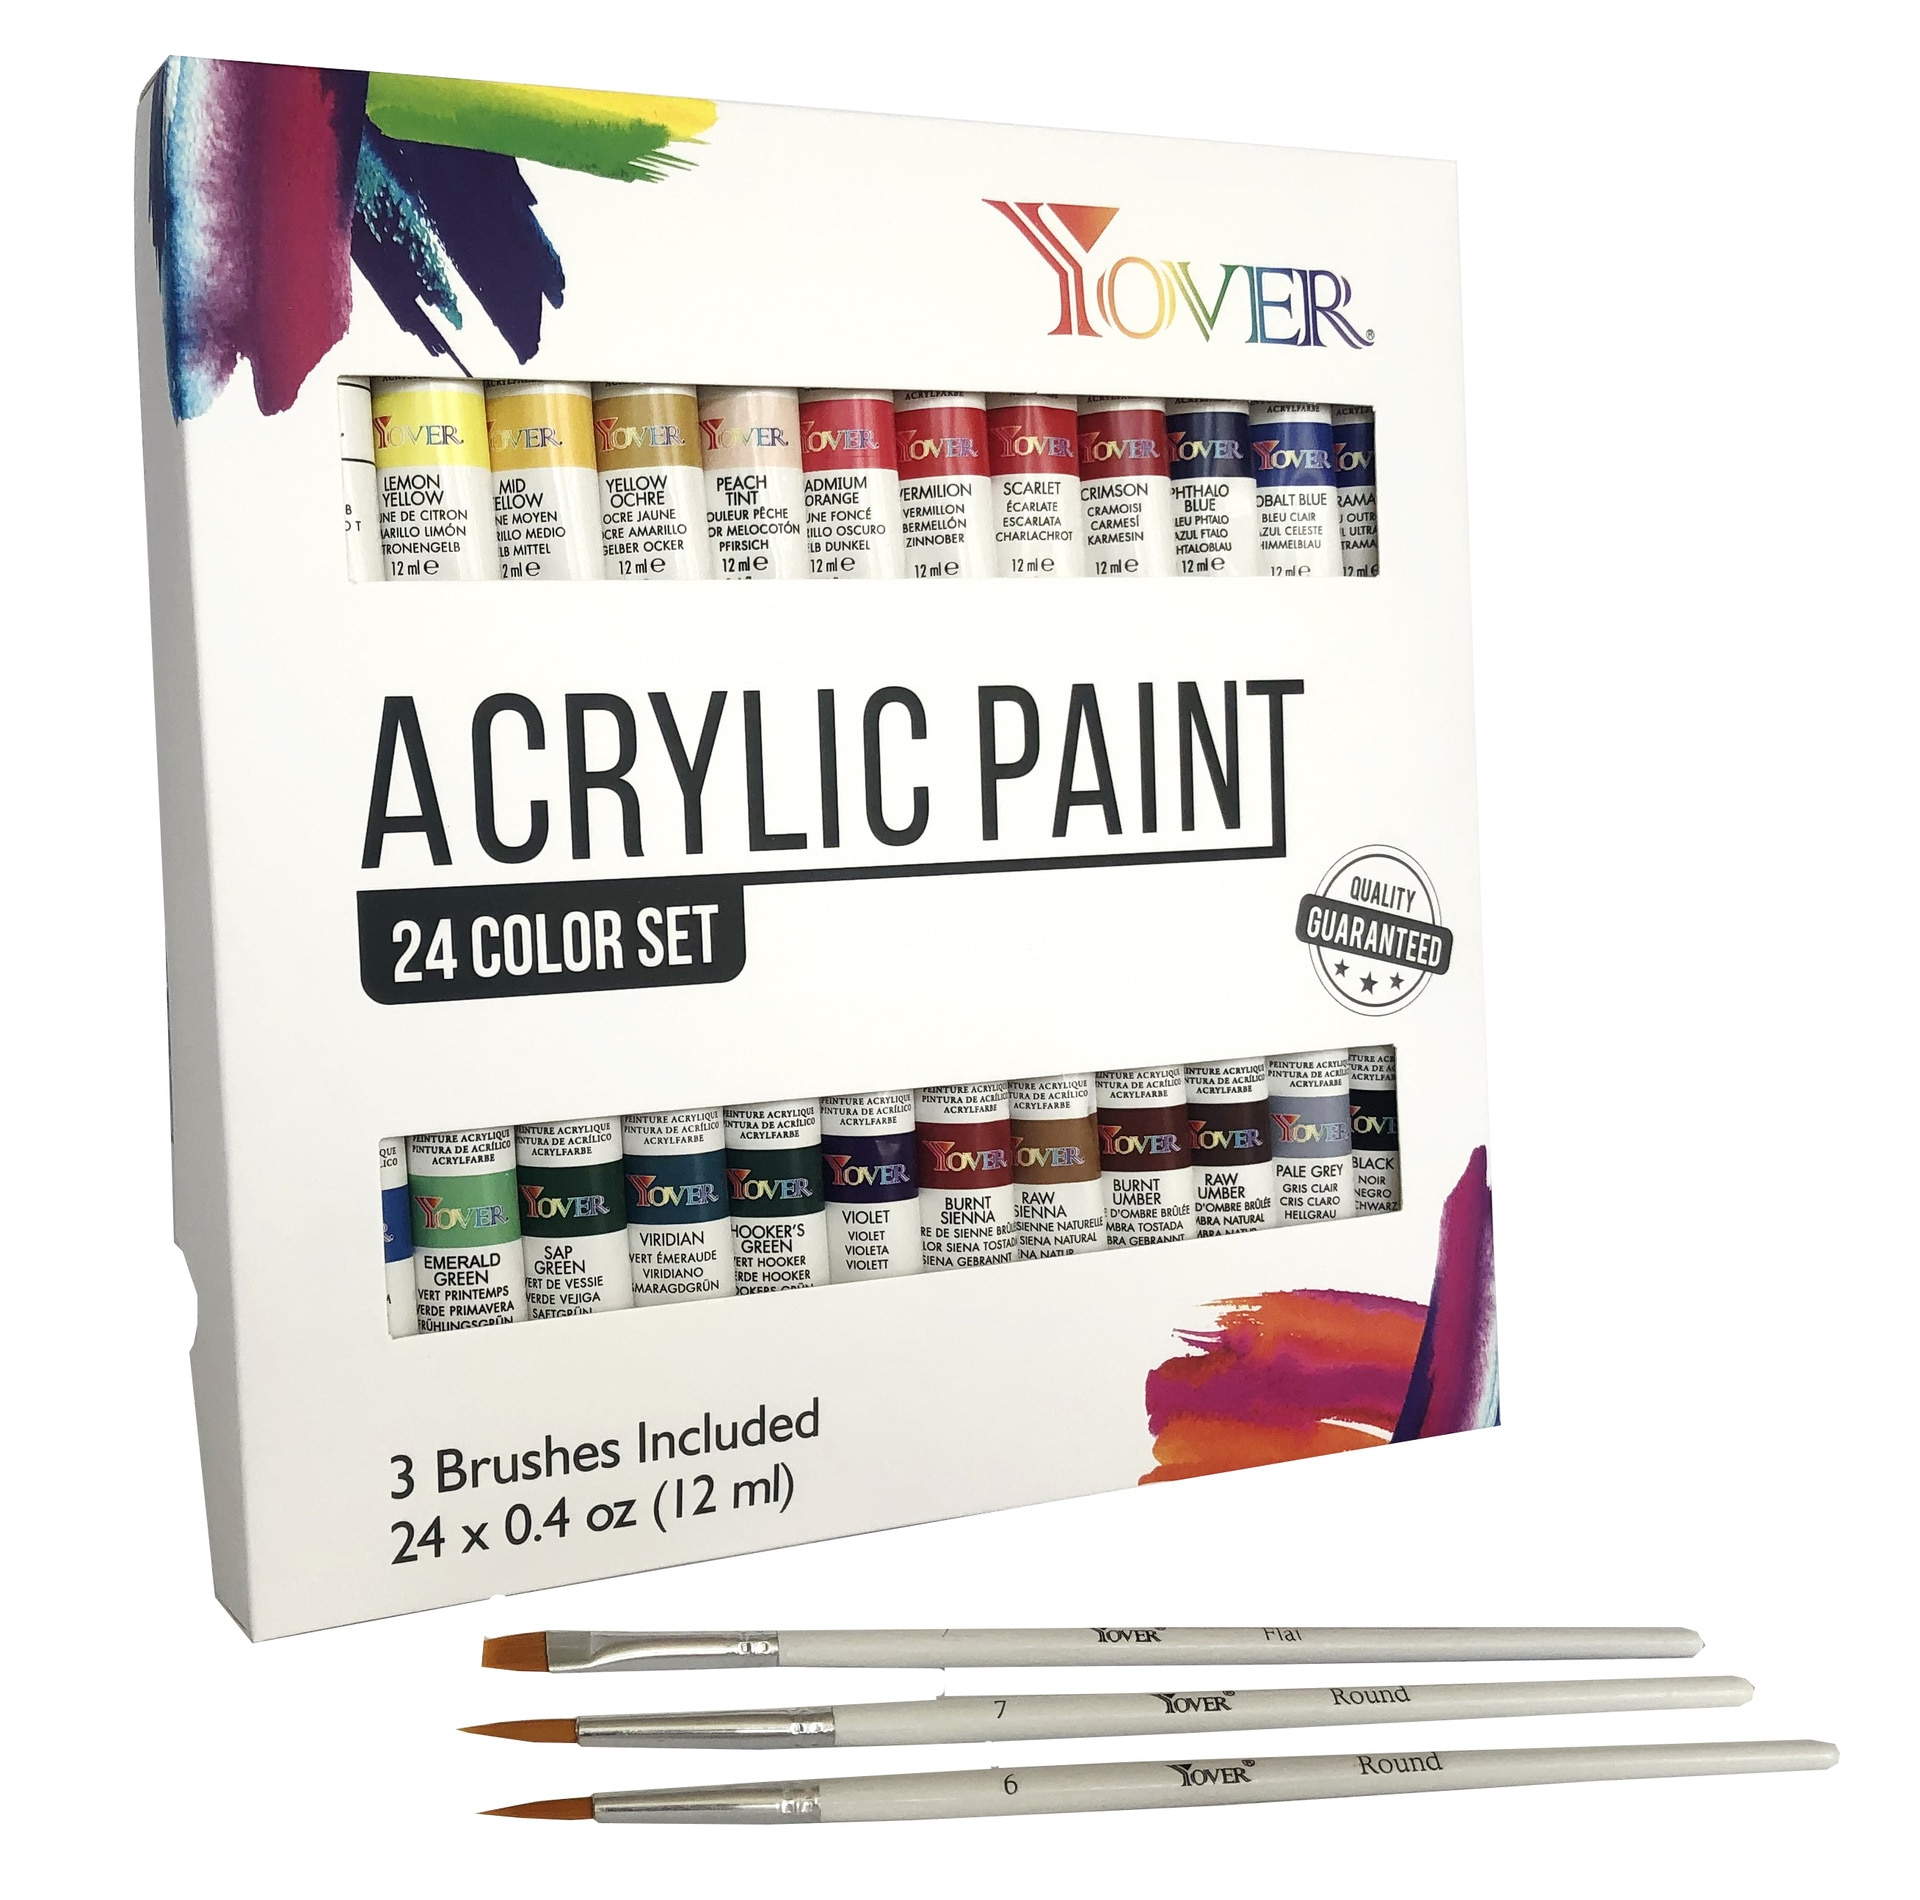 24 Pcs Acrylic Pigment Professional Art Sets Painting Supplies Art Pigment 24 Color 12ml Acrylic Pigment + 3 Brushes Set